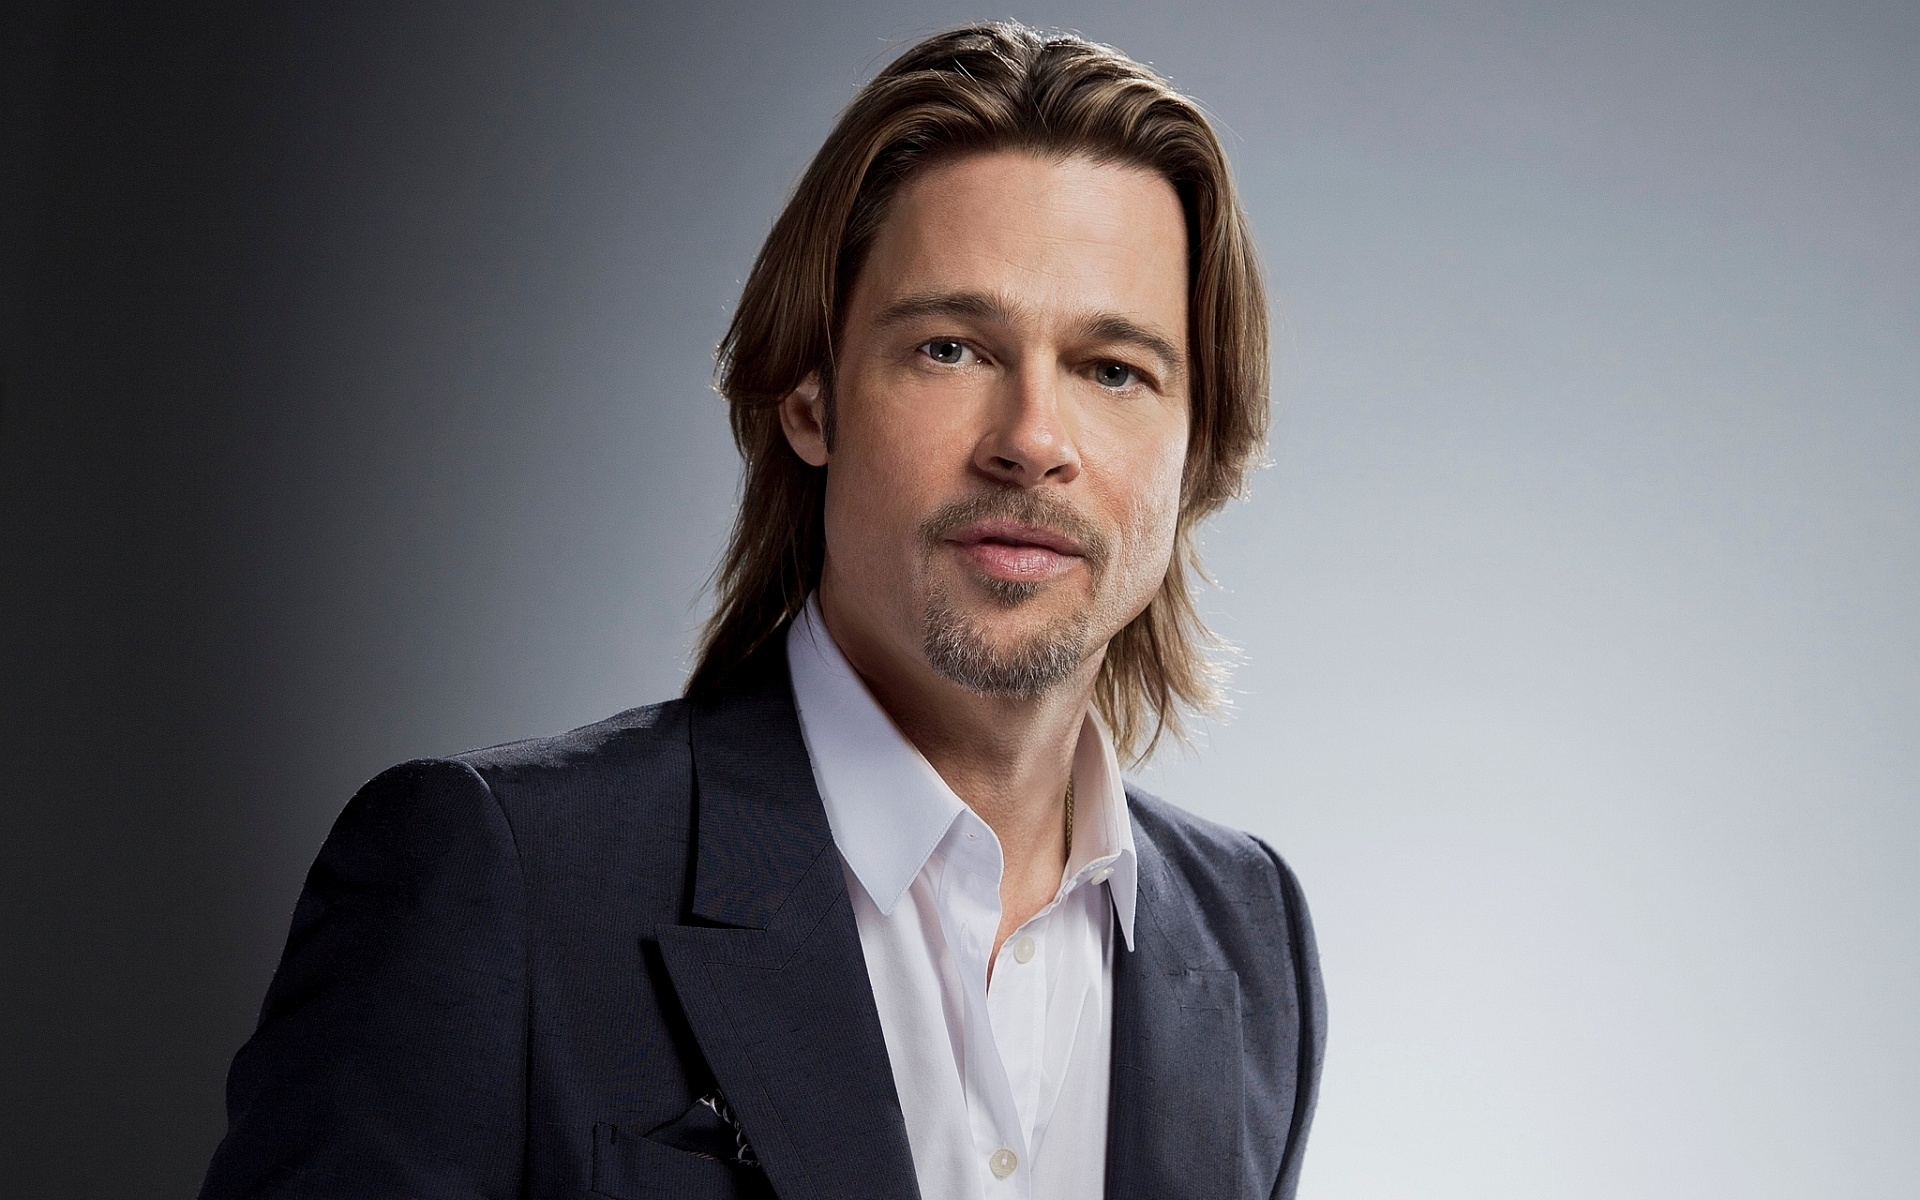 Brad-Pitt-Wallpaper-2013-HD